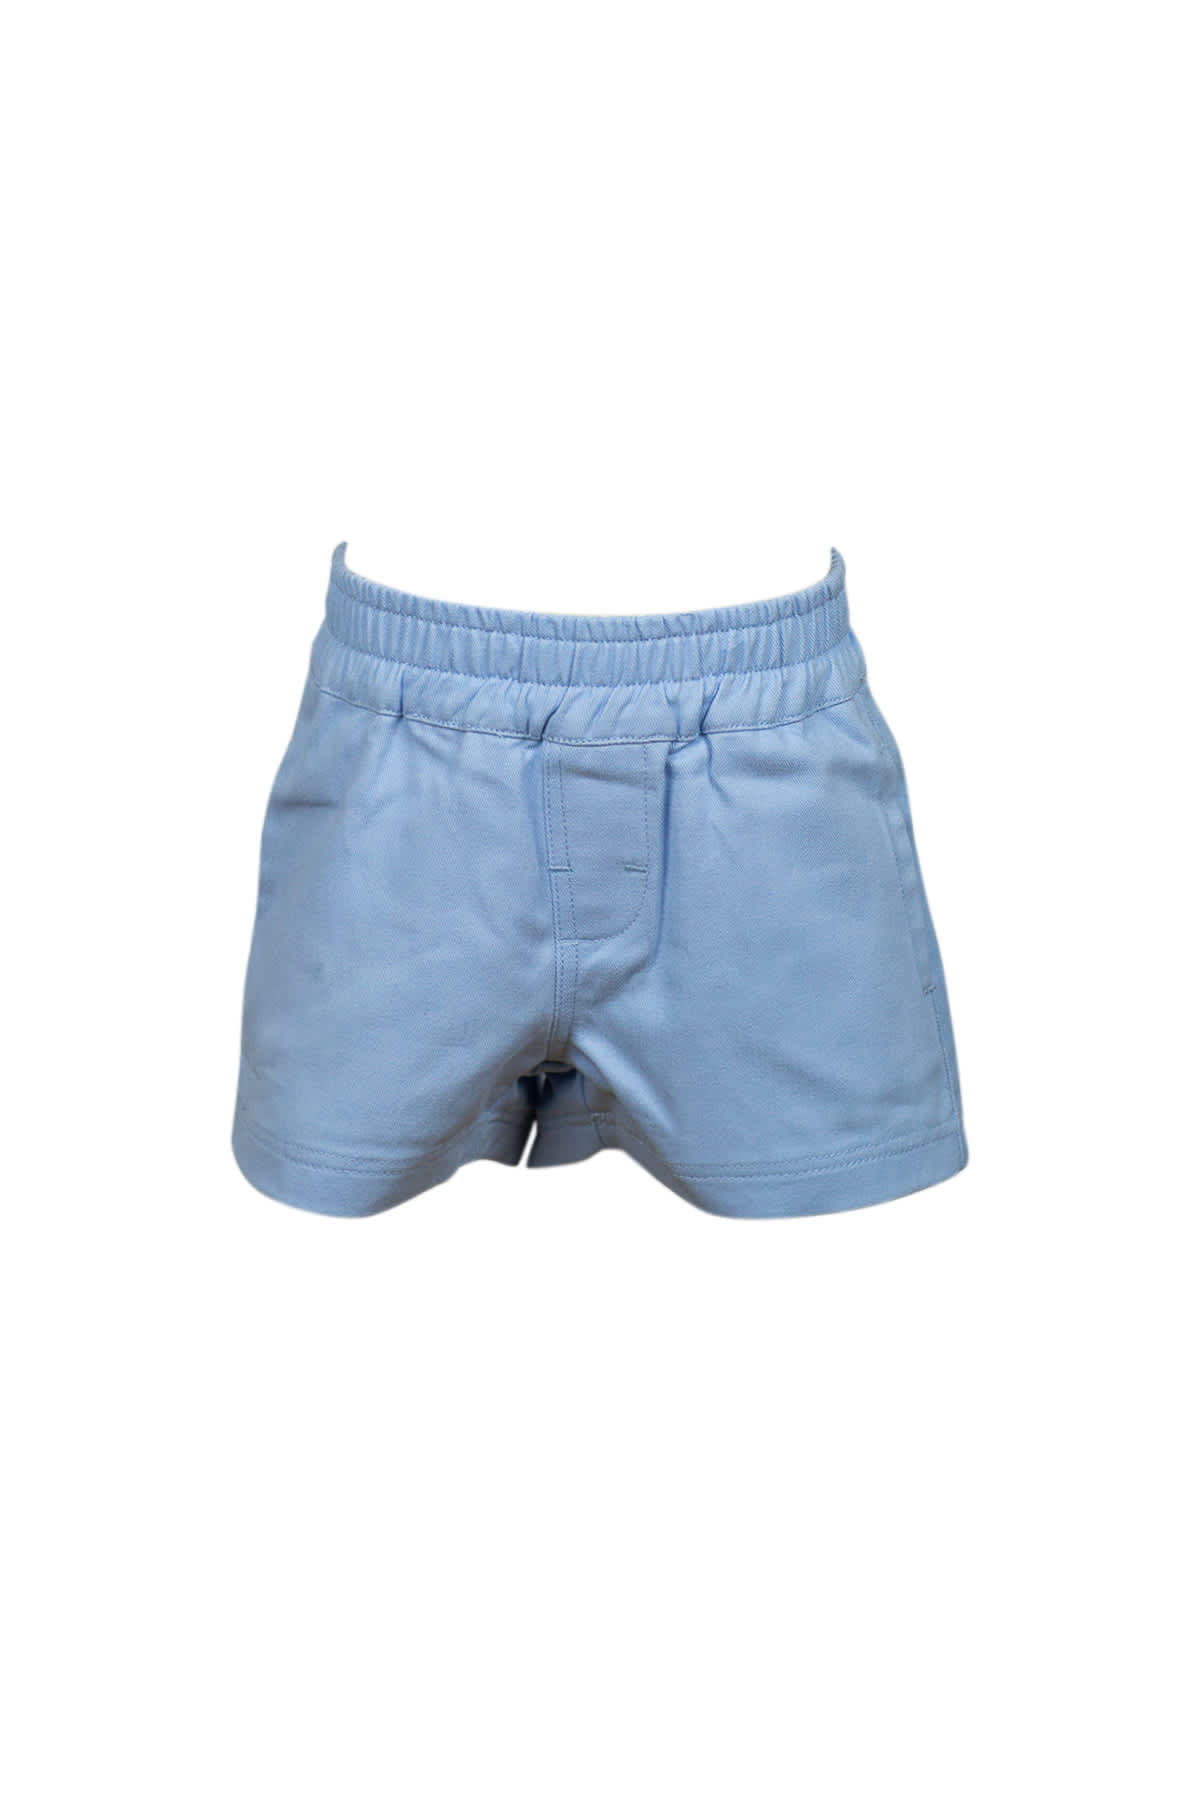 SPENCER CLASSIC SHORTS